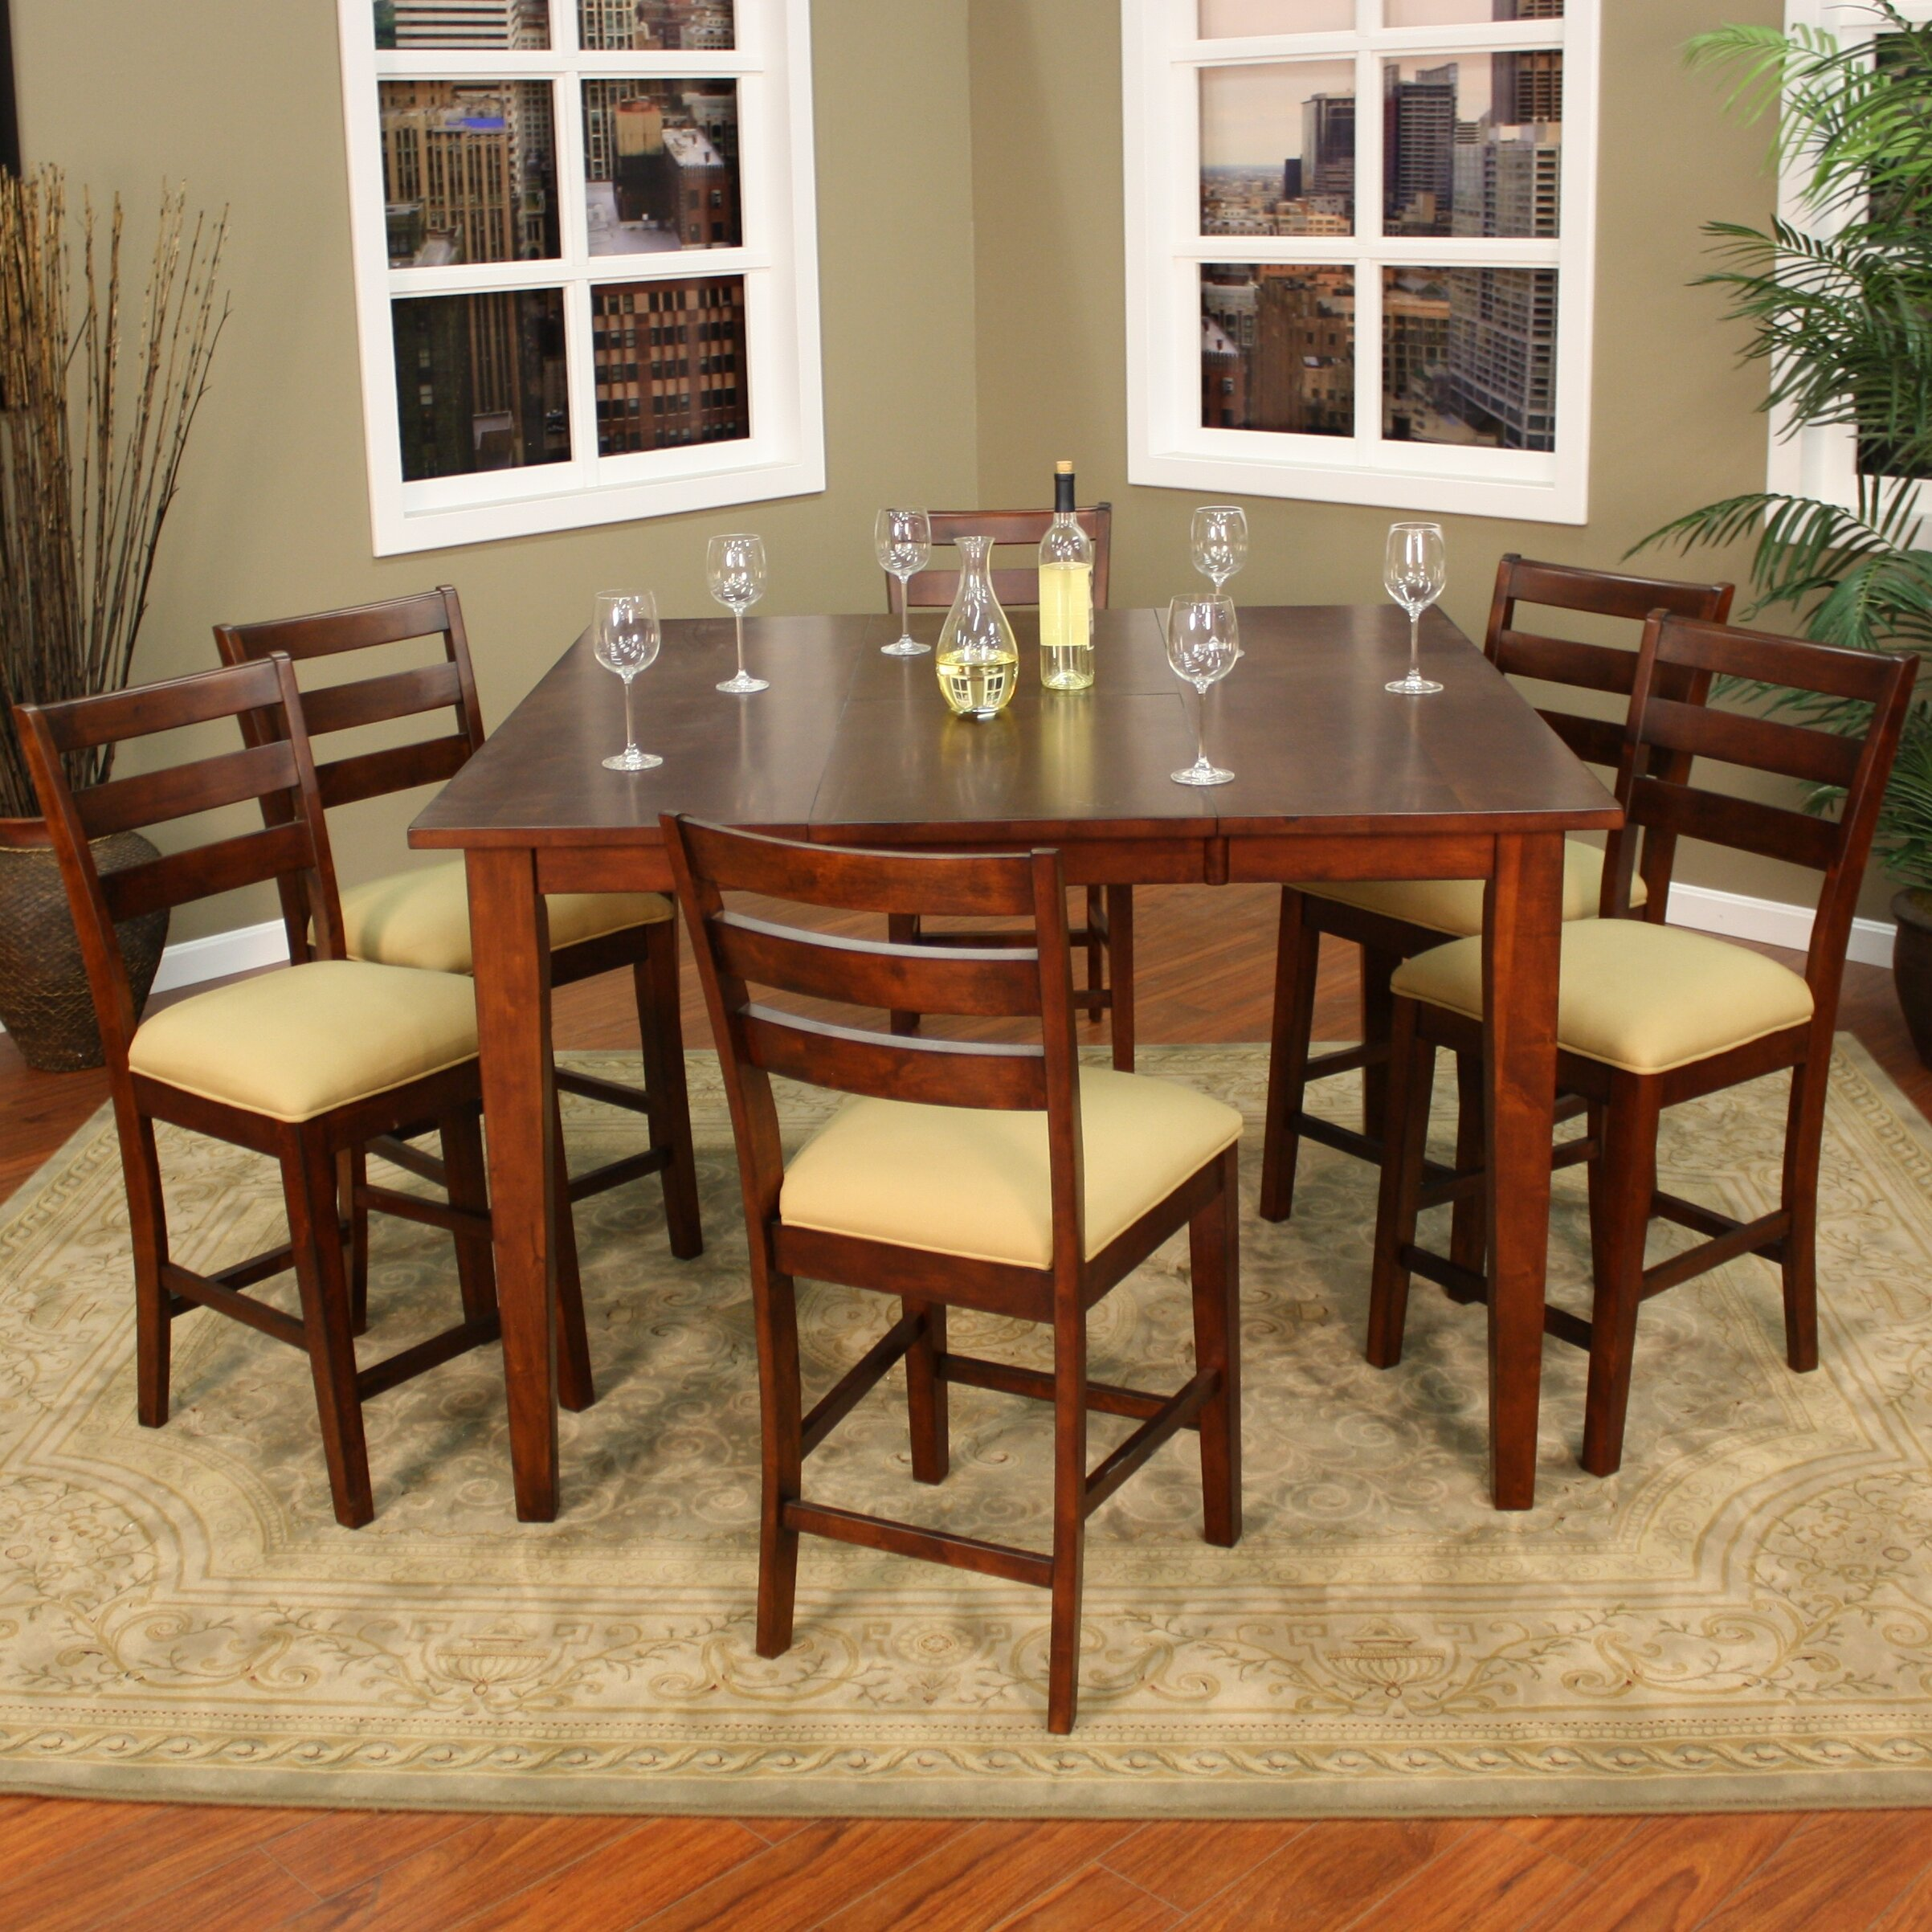 7 Piece Counter Height Dining Set At American Furniture: American Heritage Este 7 Piece Counter Height Pub Set